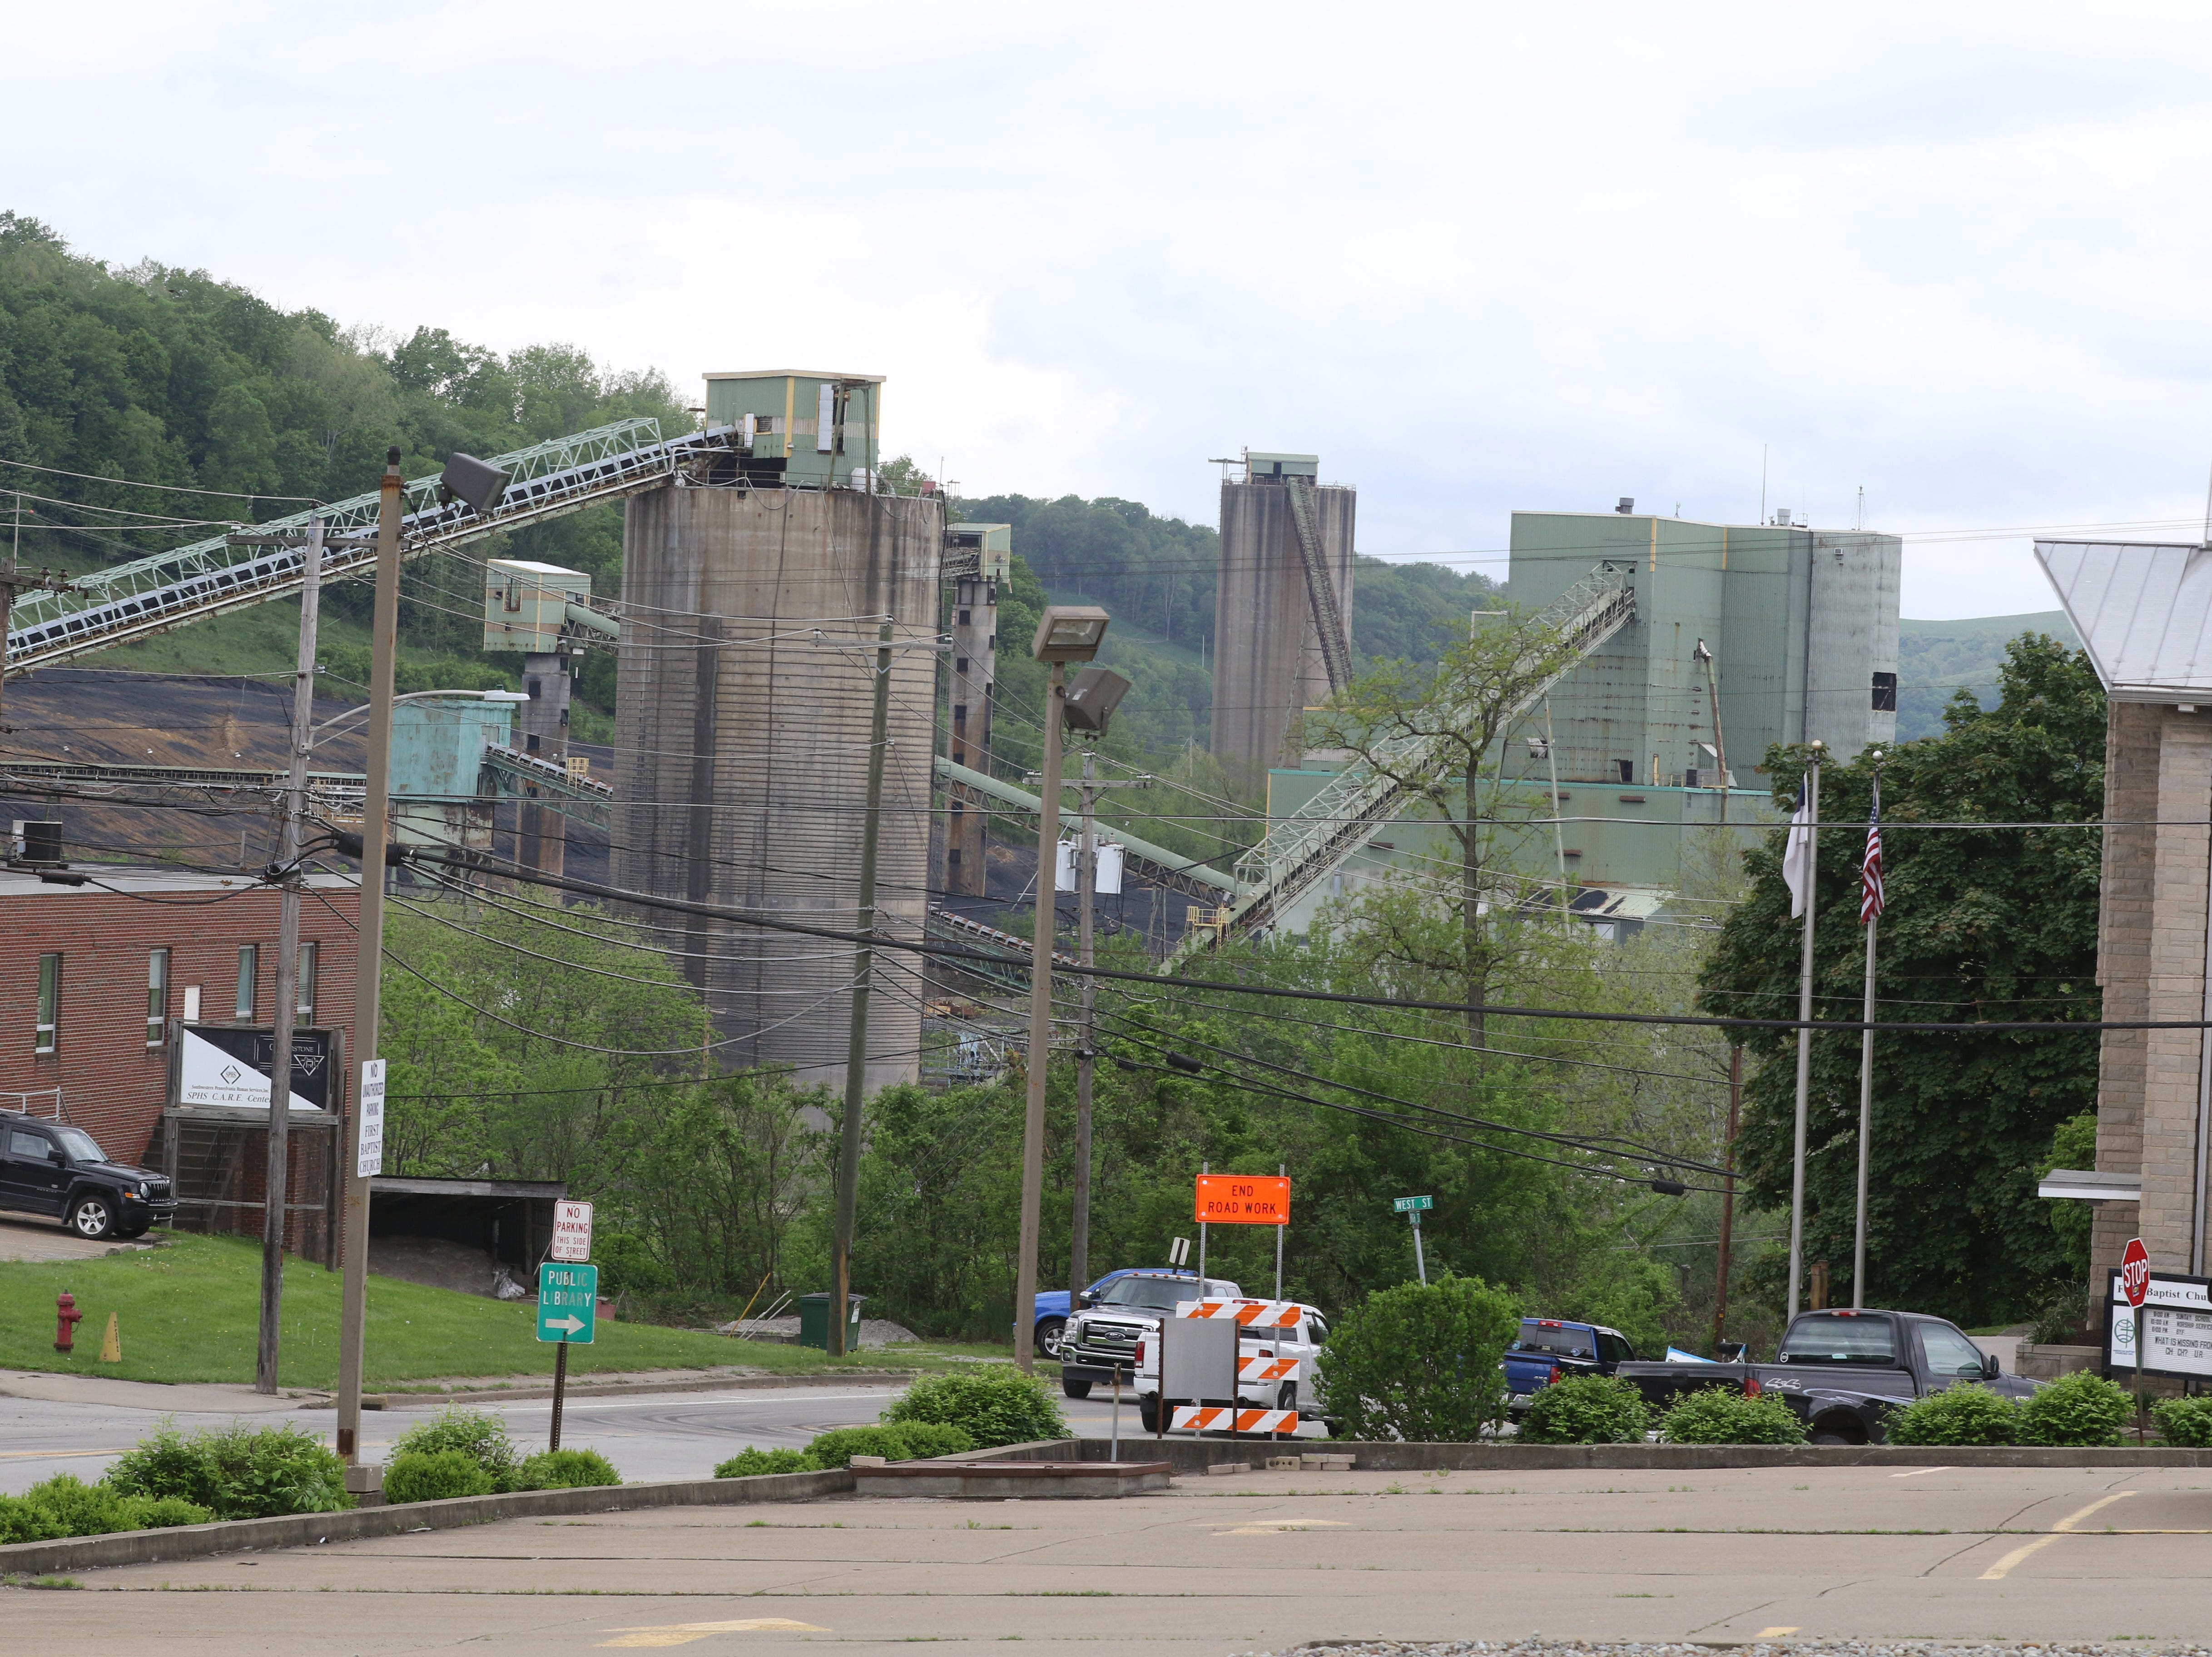 The silos and infrastructure of the Emerald Coal Mine in Waynesburg that closed two years ago, as seen from downtown.